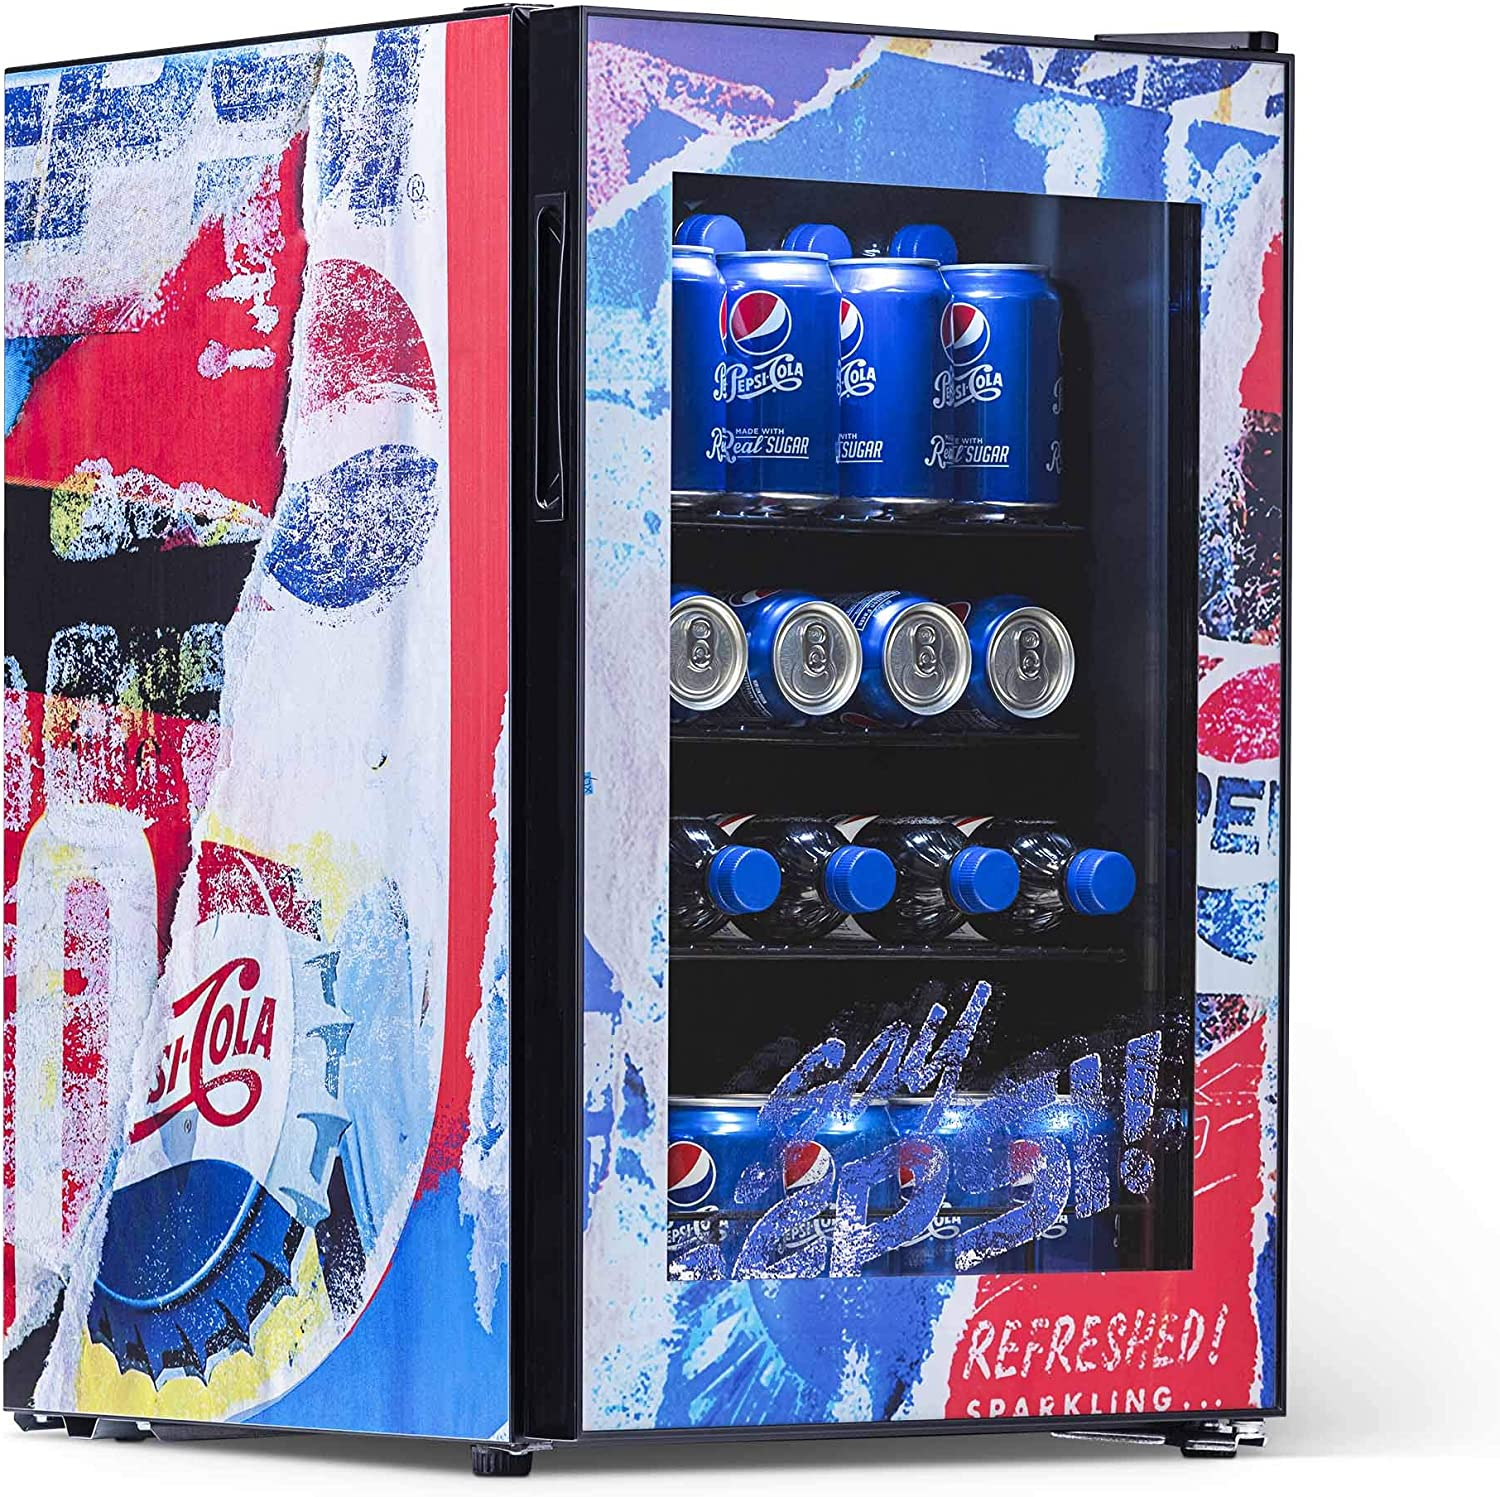 Pepsi Cola Beverage Refrigerator 90 Can Rewind' Cooler, Perfect for Soda and Beer, PBC0850200, Red